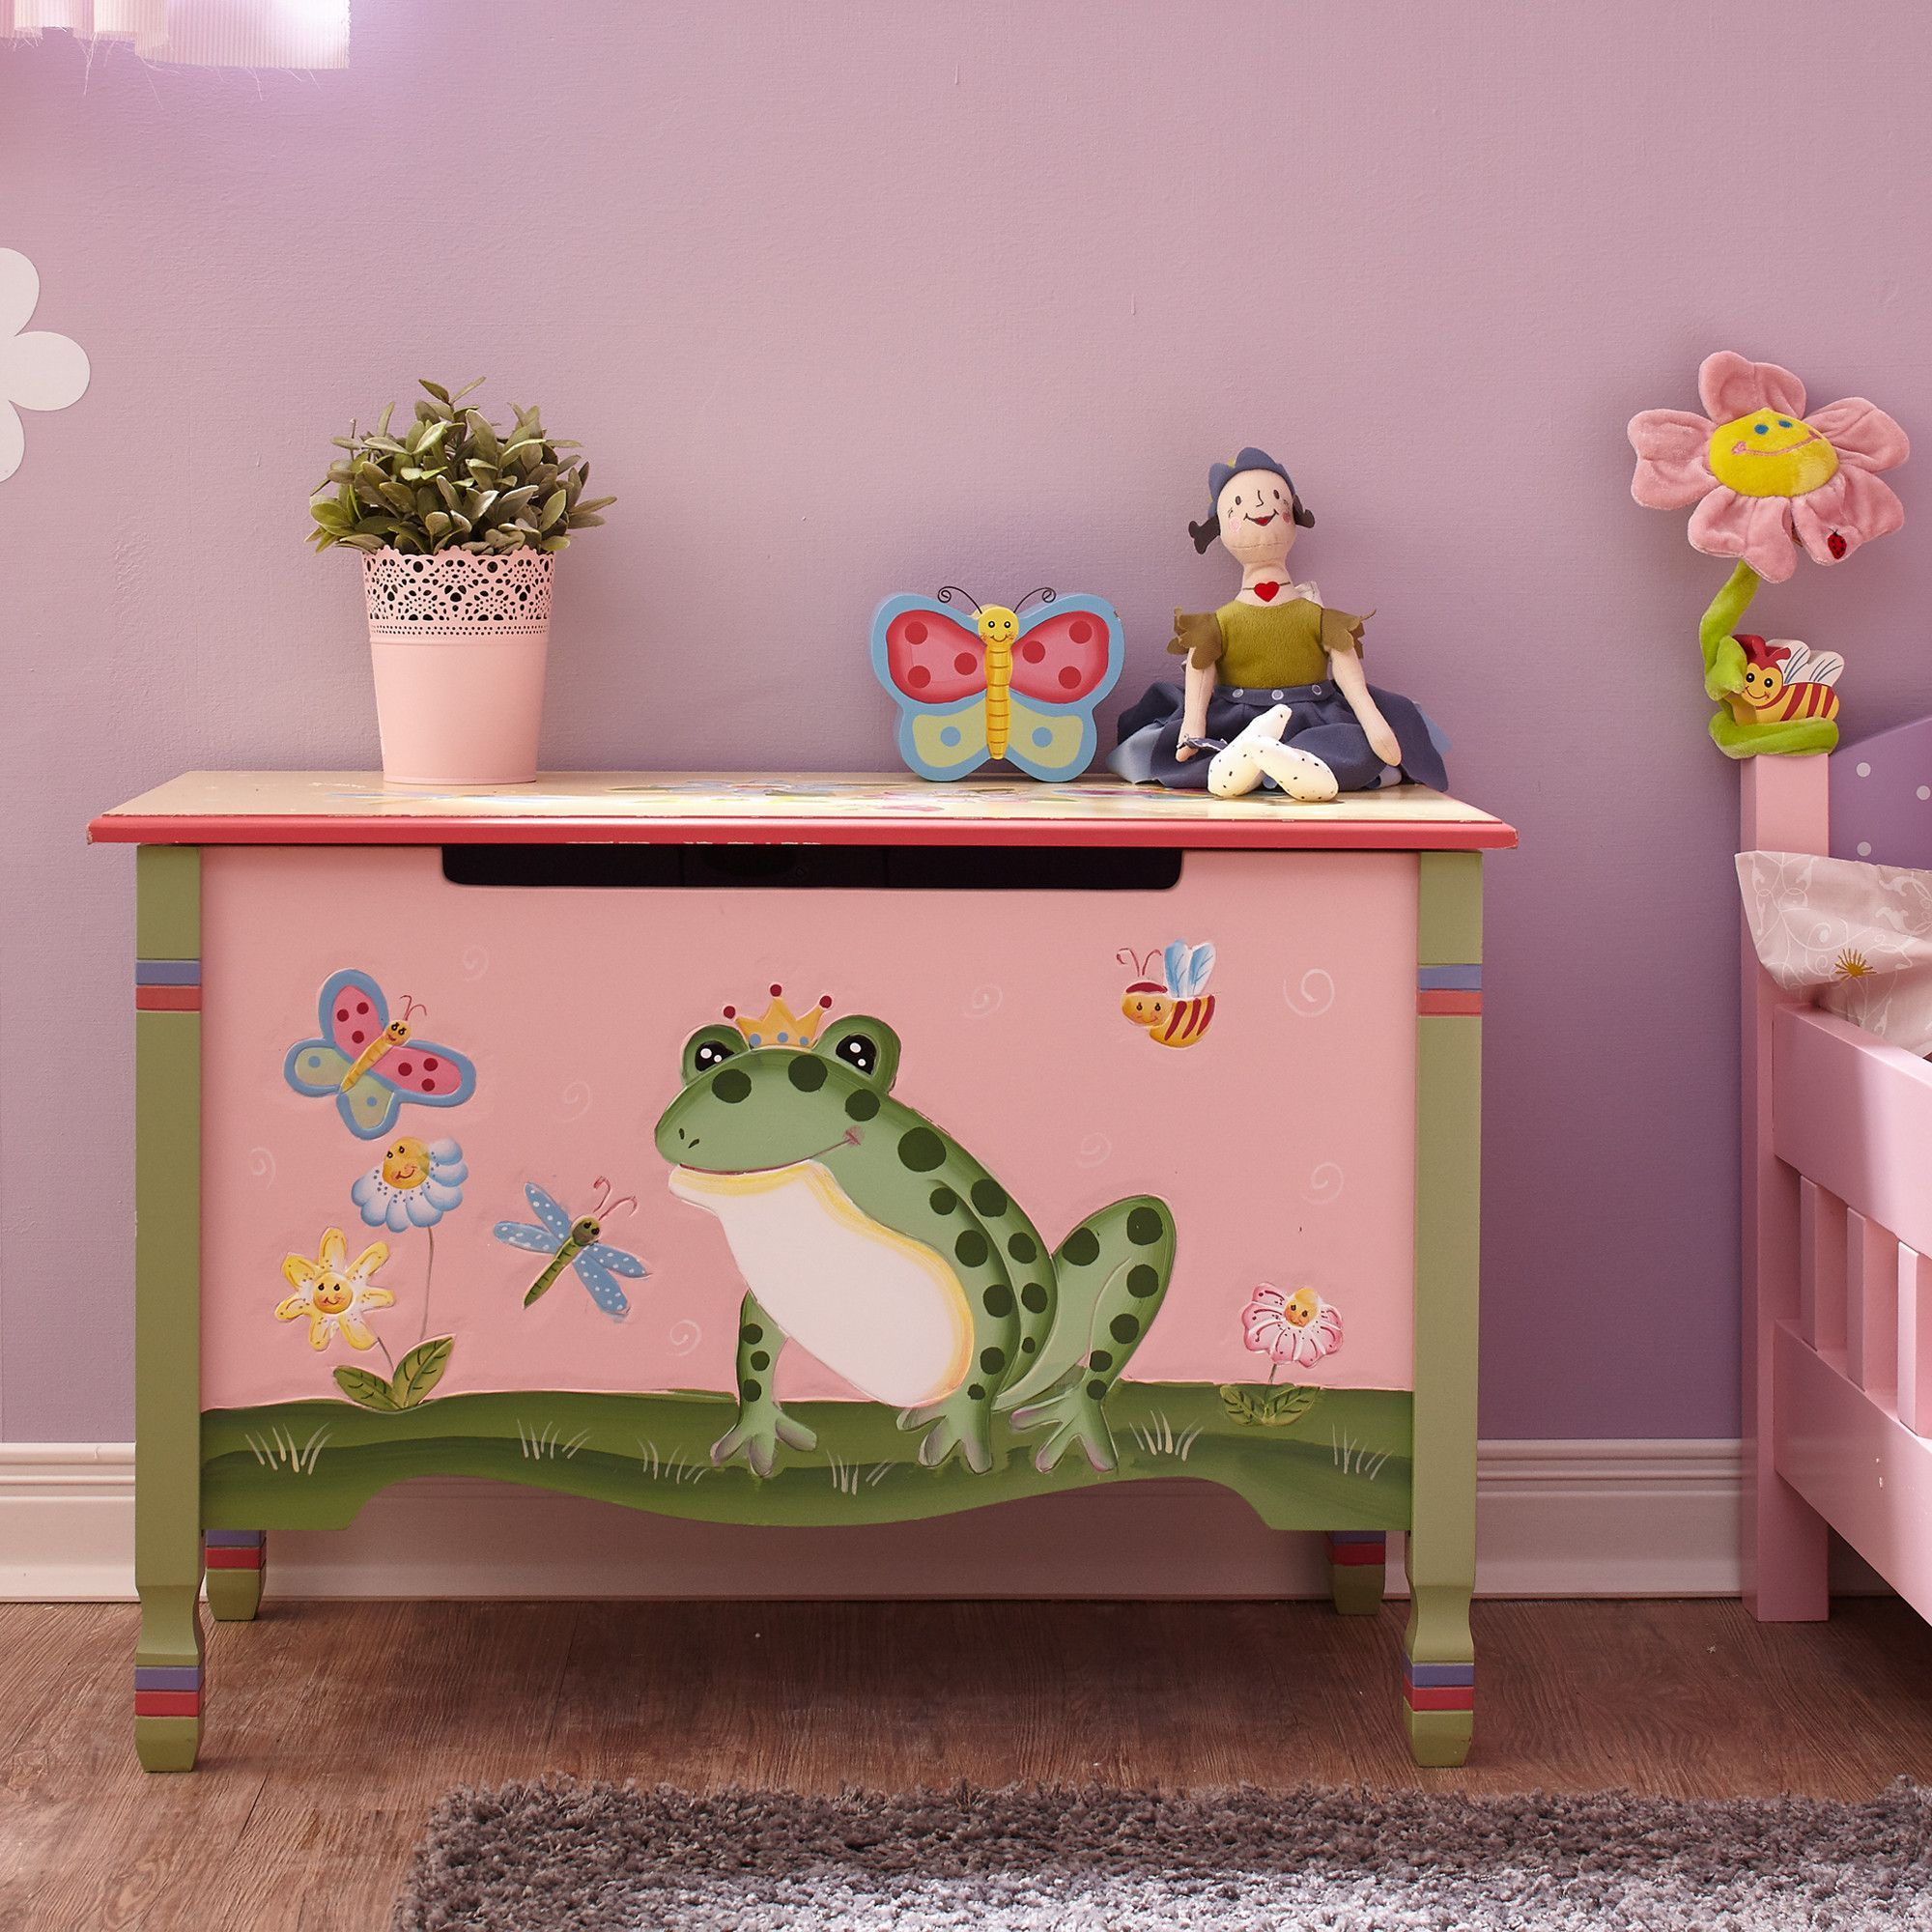 Prince Charming Is Just A Kiss Away With Fantasy Fields Magic Garden Toy Chest A Friendly Green Frog Bounce Muebles Para Ninos Cajas Pintadas Mueble Pintado